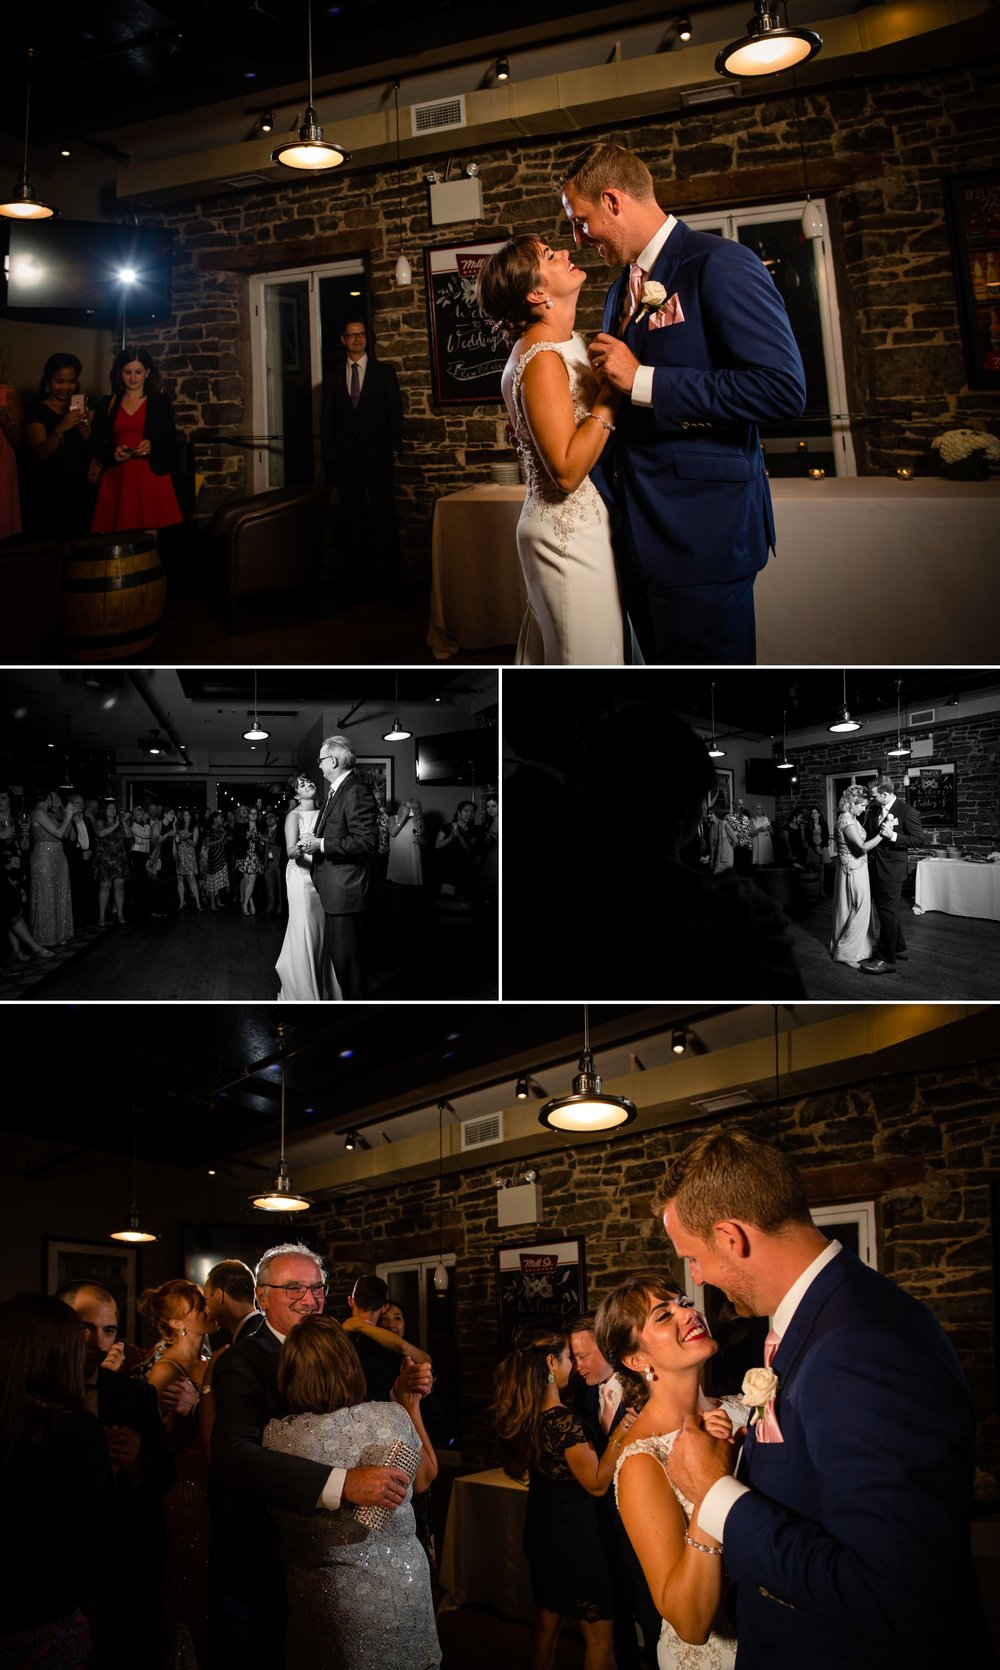 The bride and groom during their first dances at their wedding reception at The Mill St Brew Pub in downtown Ottawa